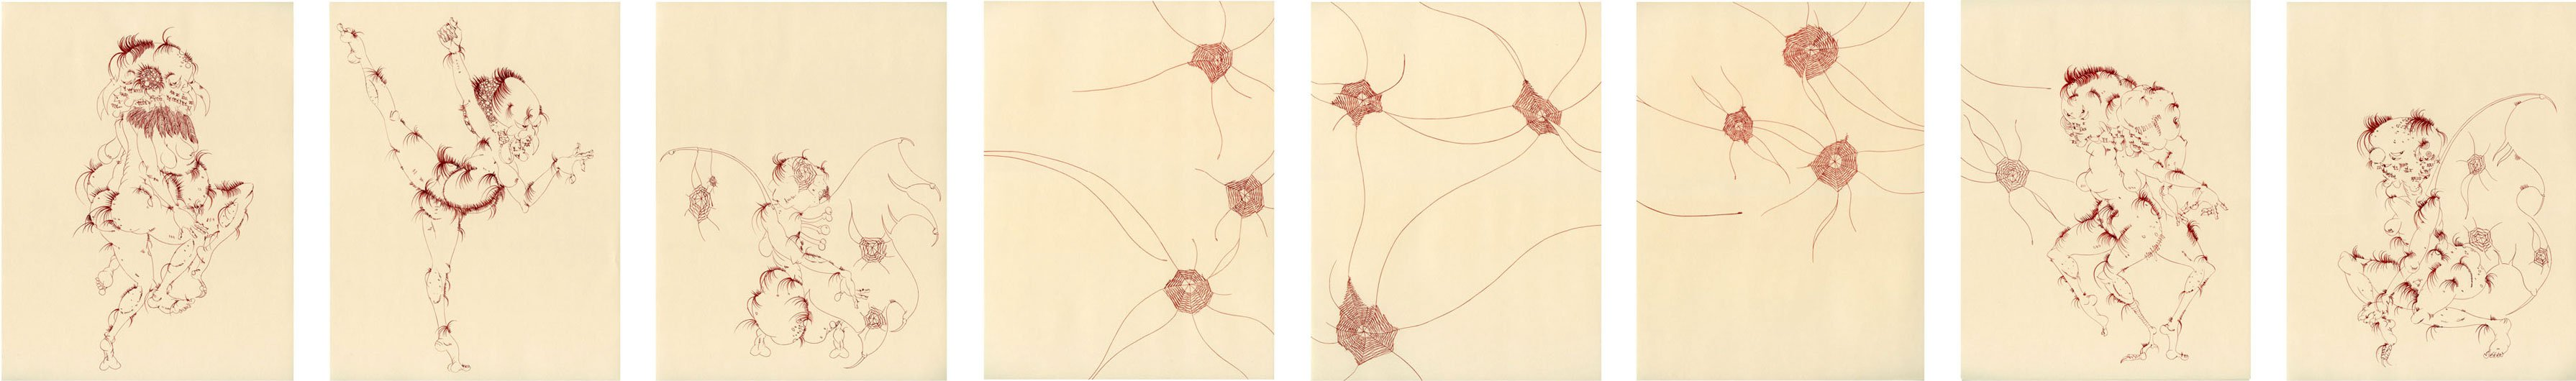 "untitled, 2012, ink and embroidery on paper, a series of 8 drawings, 13"" x 10"""